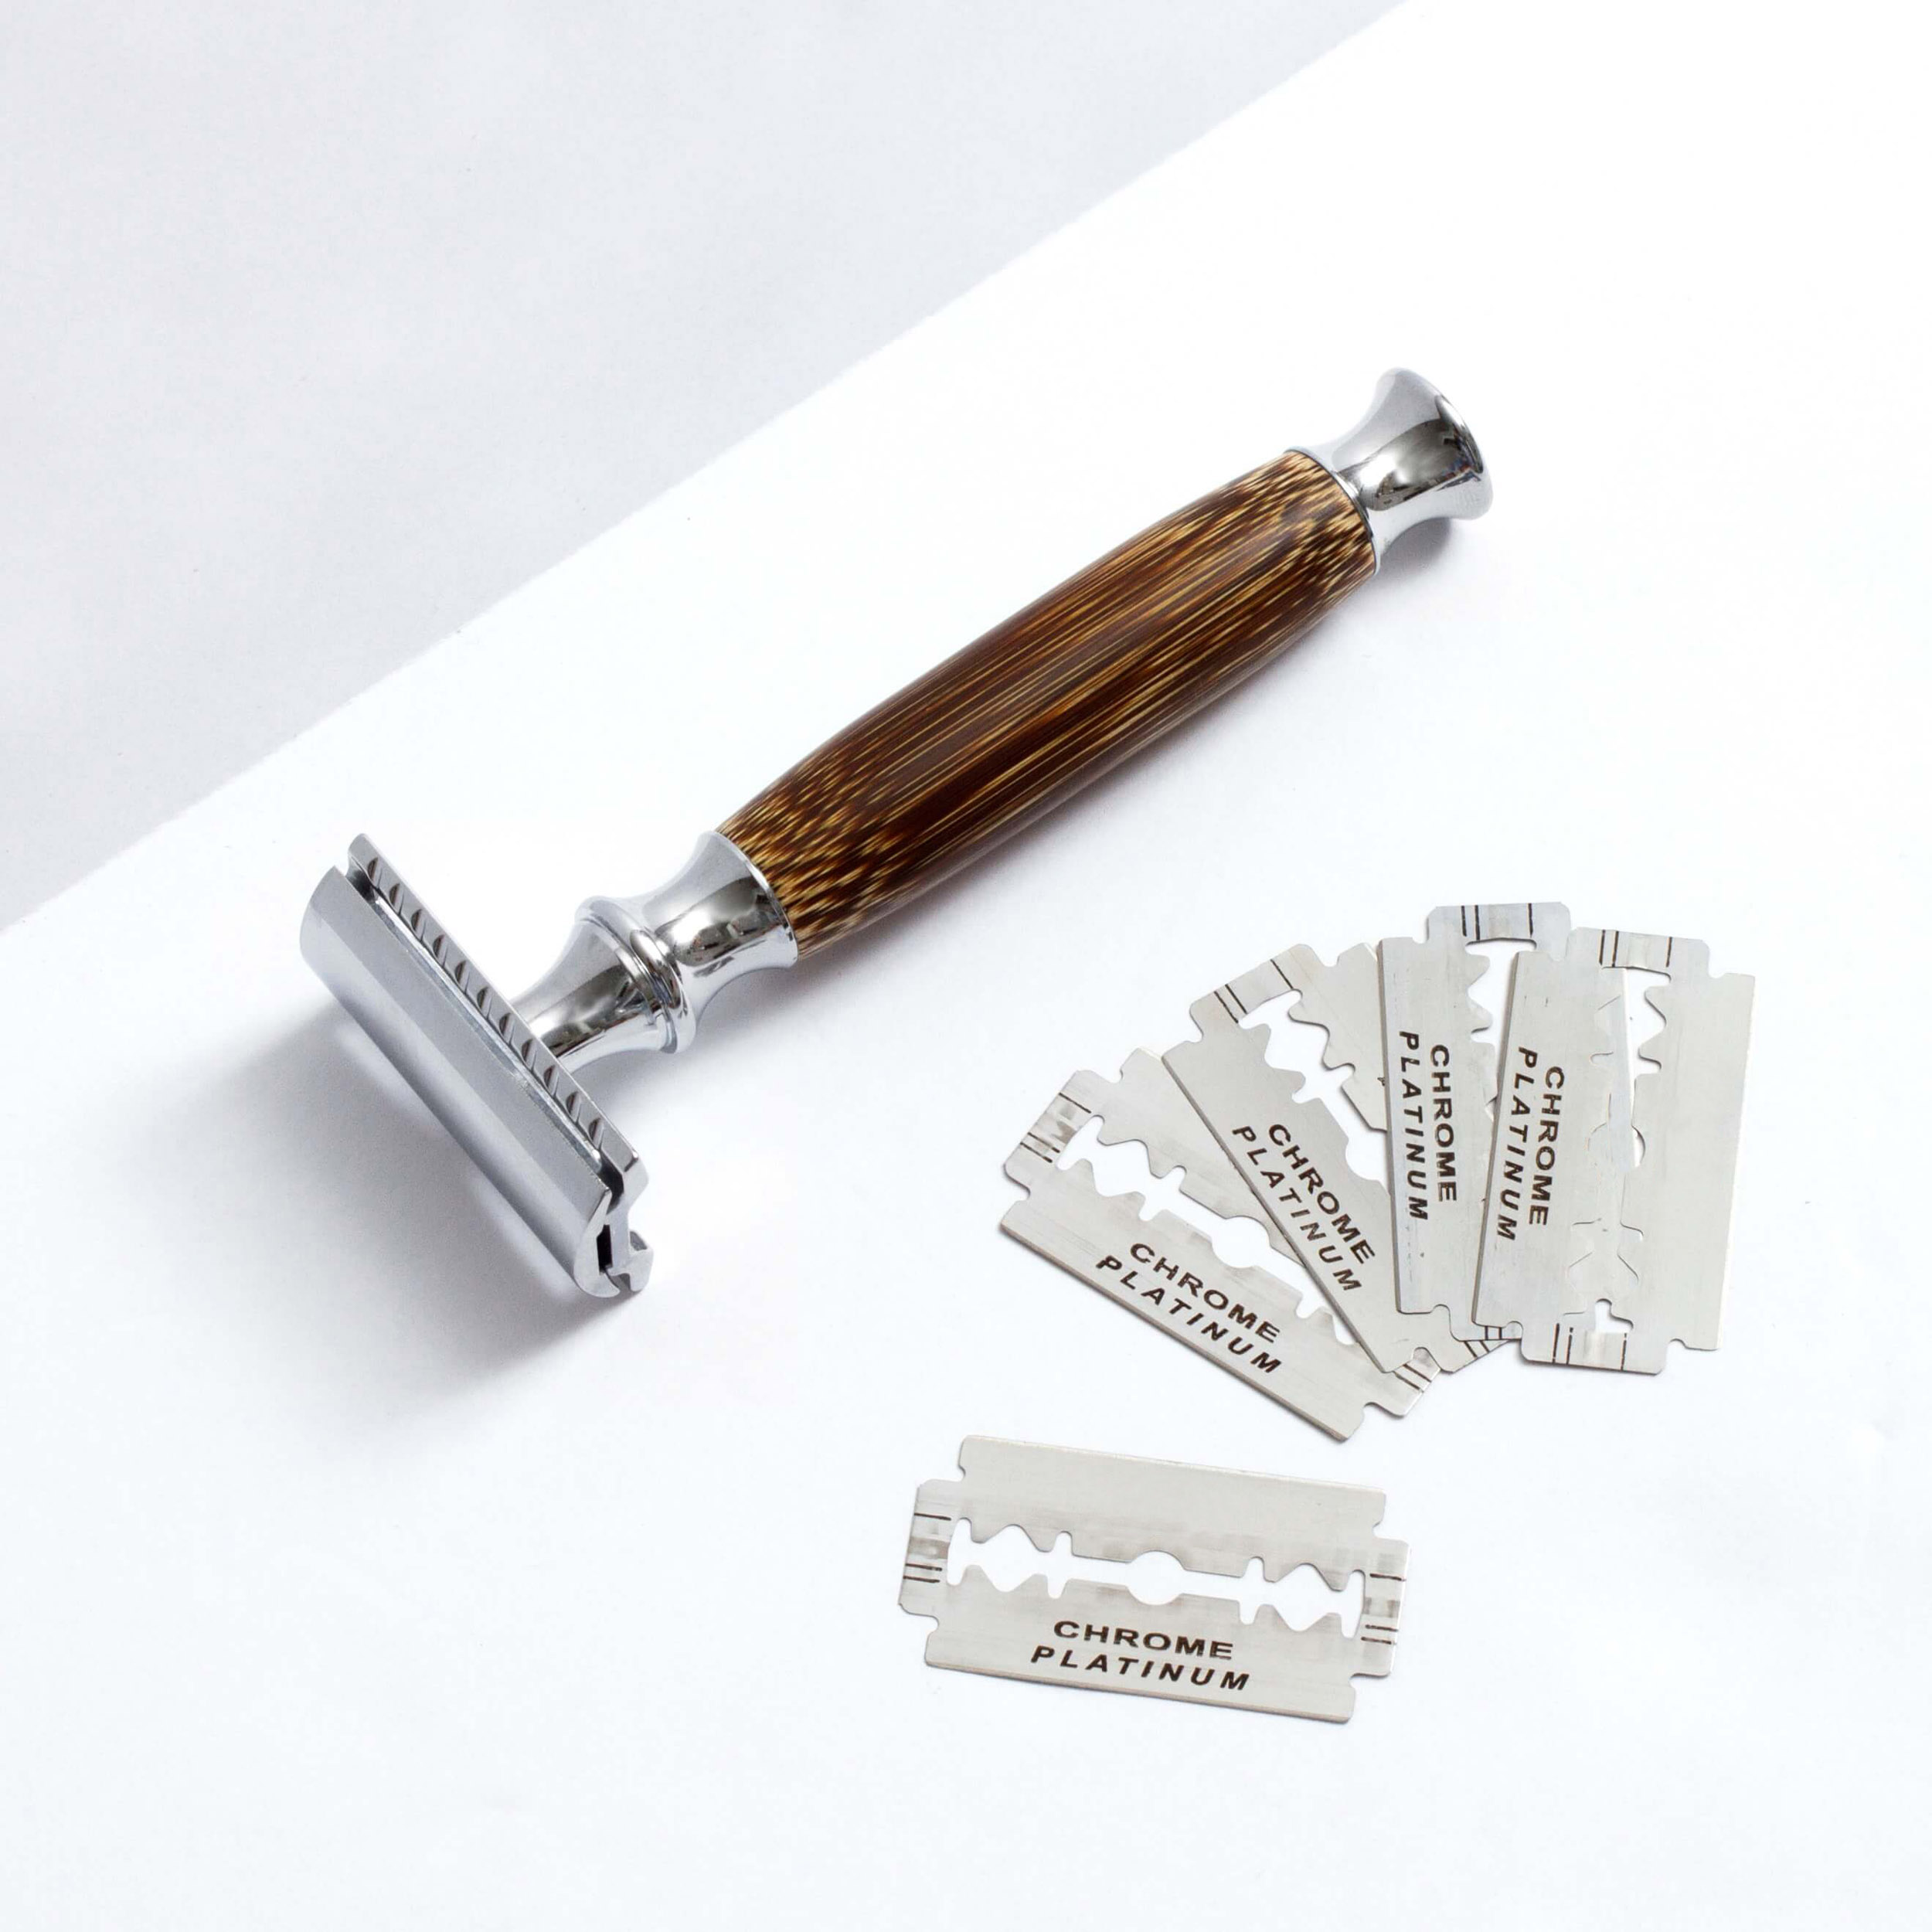 HOT TO USE A SAFETY RAZOR AND BLADE DISPOSAL